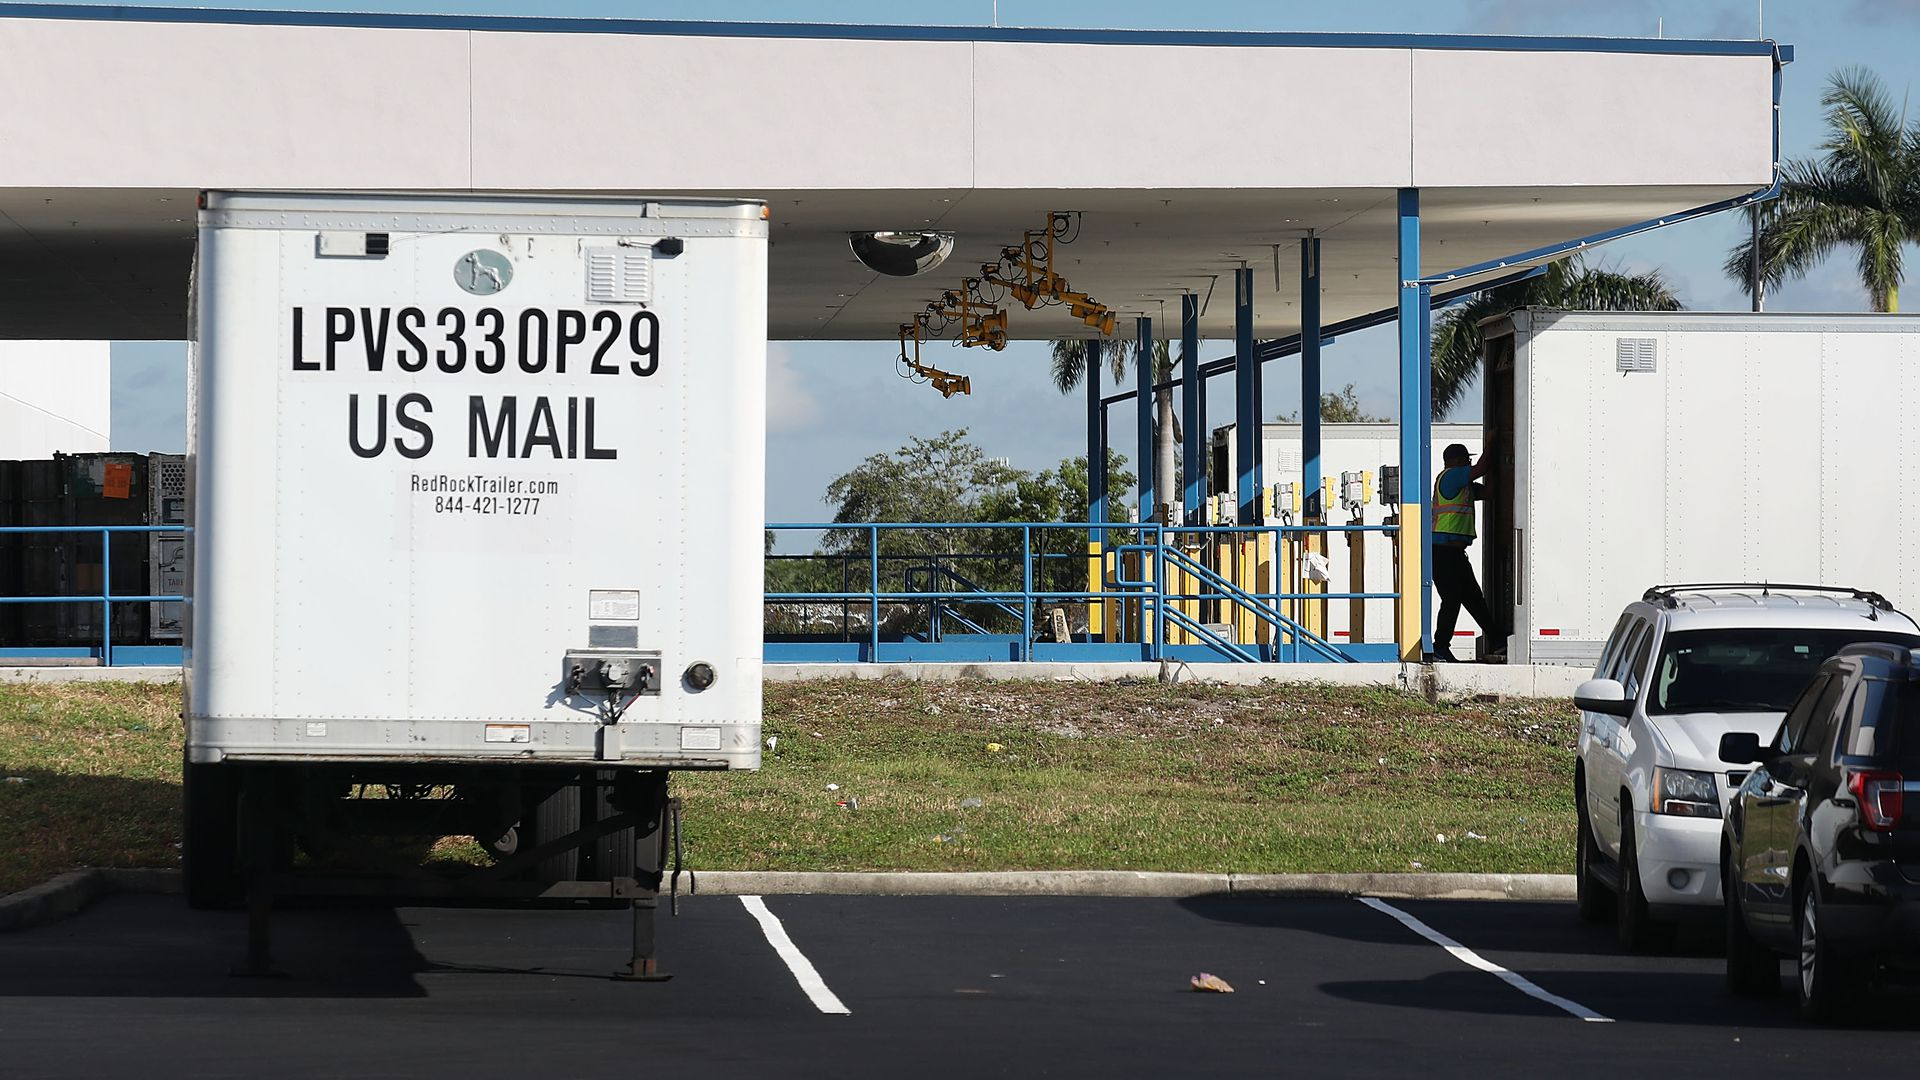 A U.S. mail truck at a mail facility in Florida.